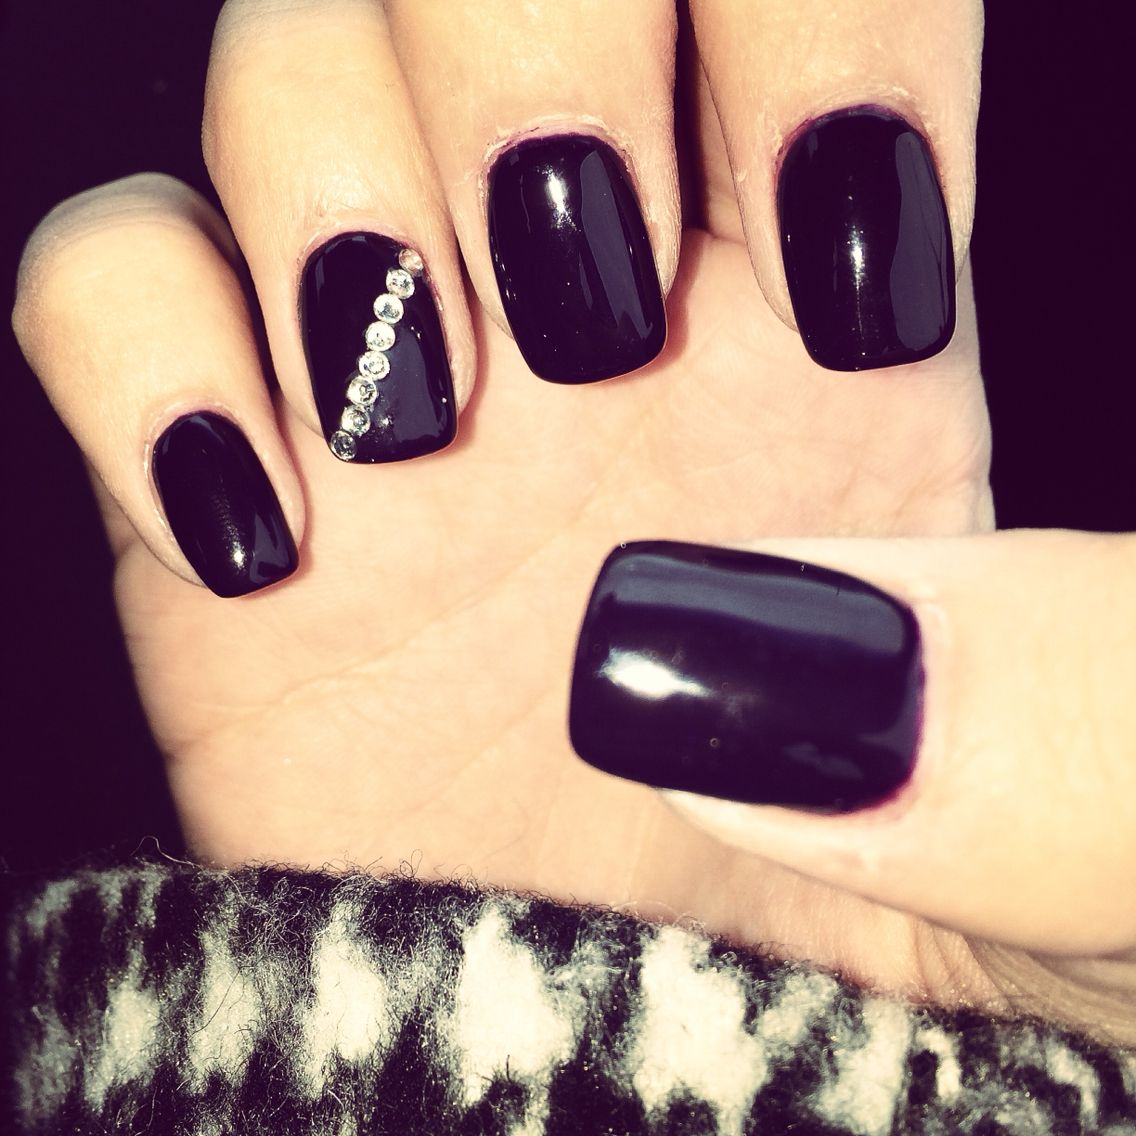 Dark purple nails with rhinestone accent | Nail Designs | Pinterest ...